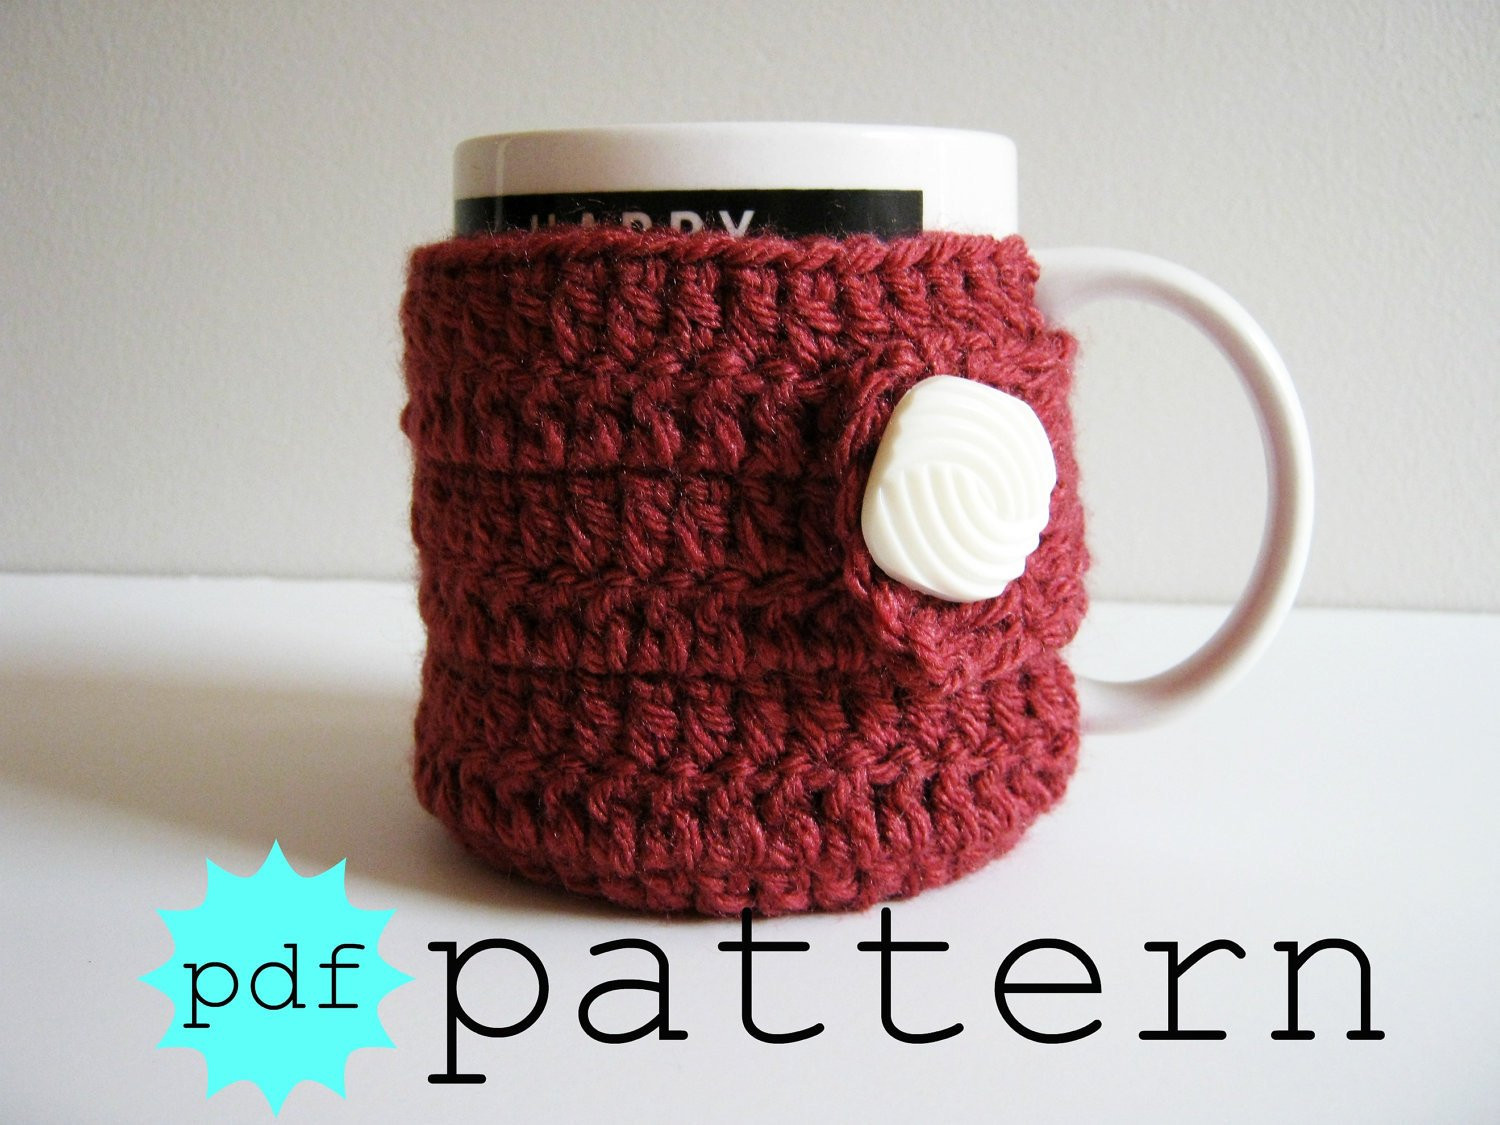 Crochet Coffee Cup Cozy Luxury Pdf Crochet Pattern Coffee Mug Cozy with button by Of Crochet Coffee Cup Cozy Awesome Textured Coffee Mug Cozy Crochet Pattern